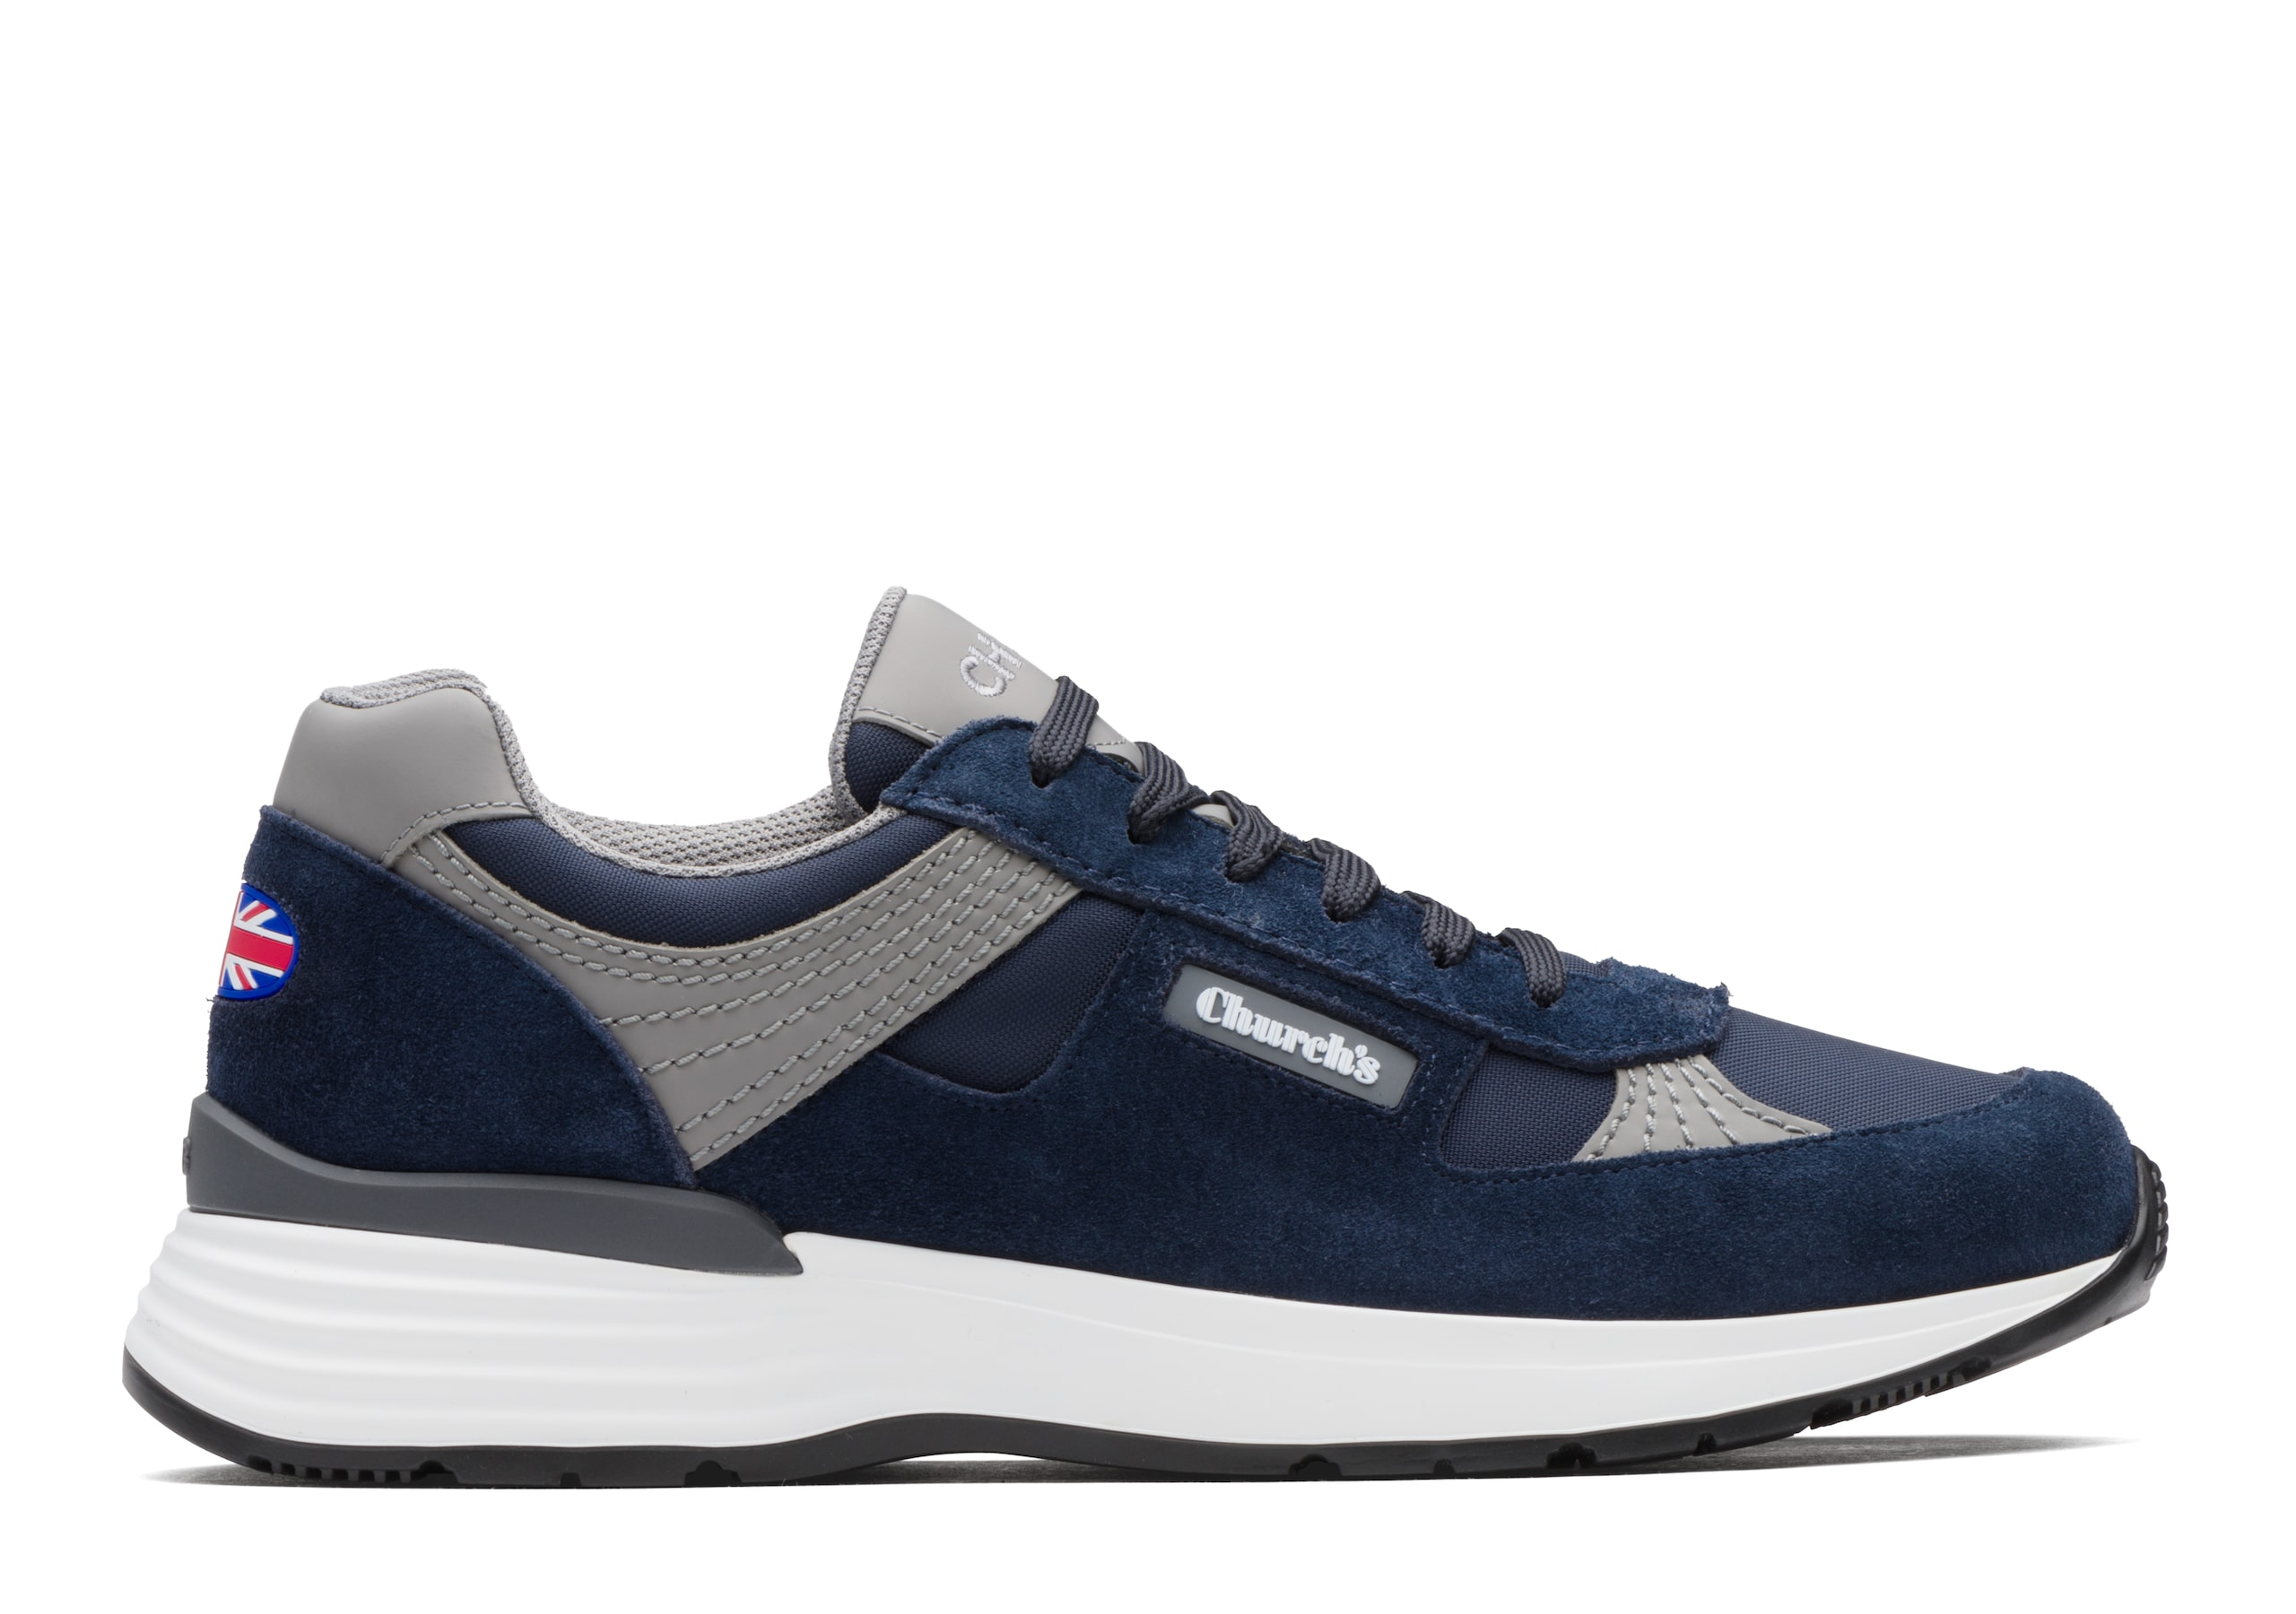 Ch873 Church's Suede Tech Retro Sneaker Blue